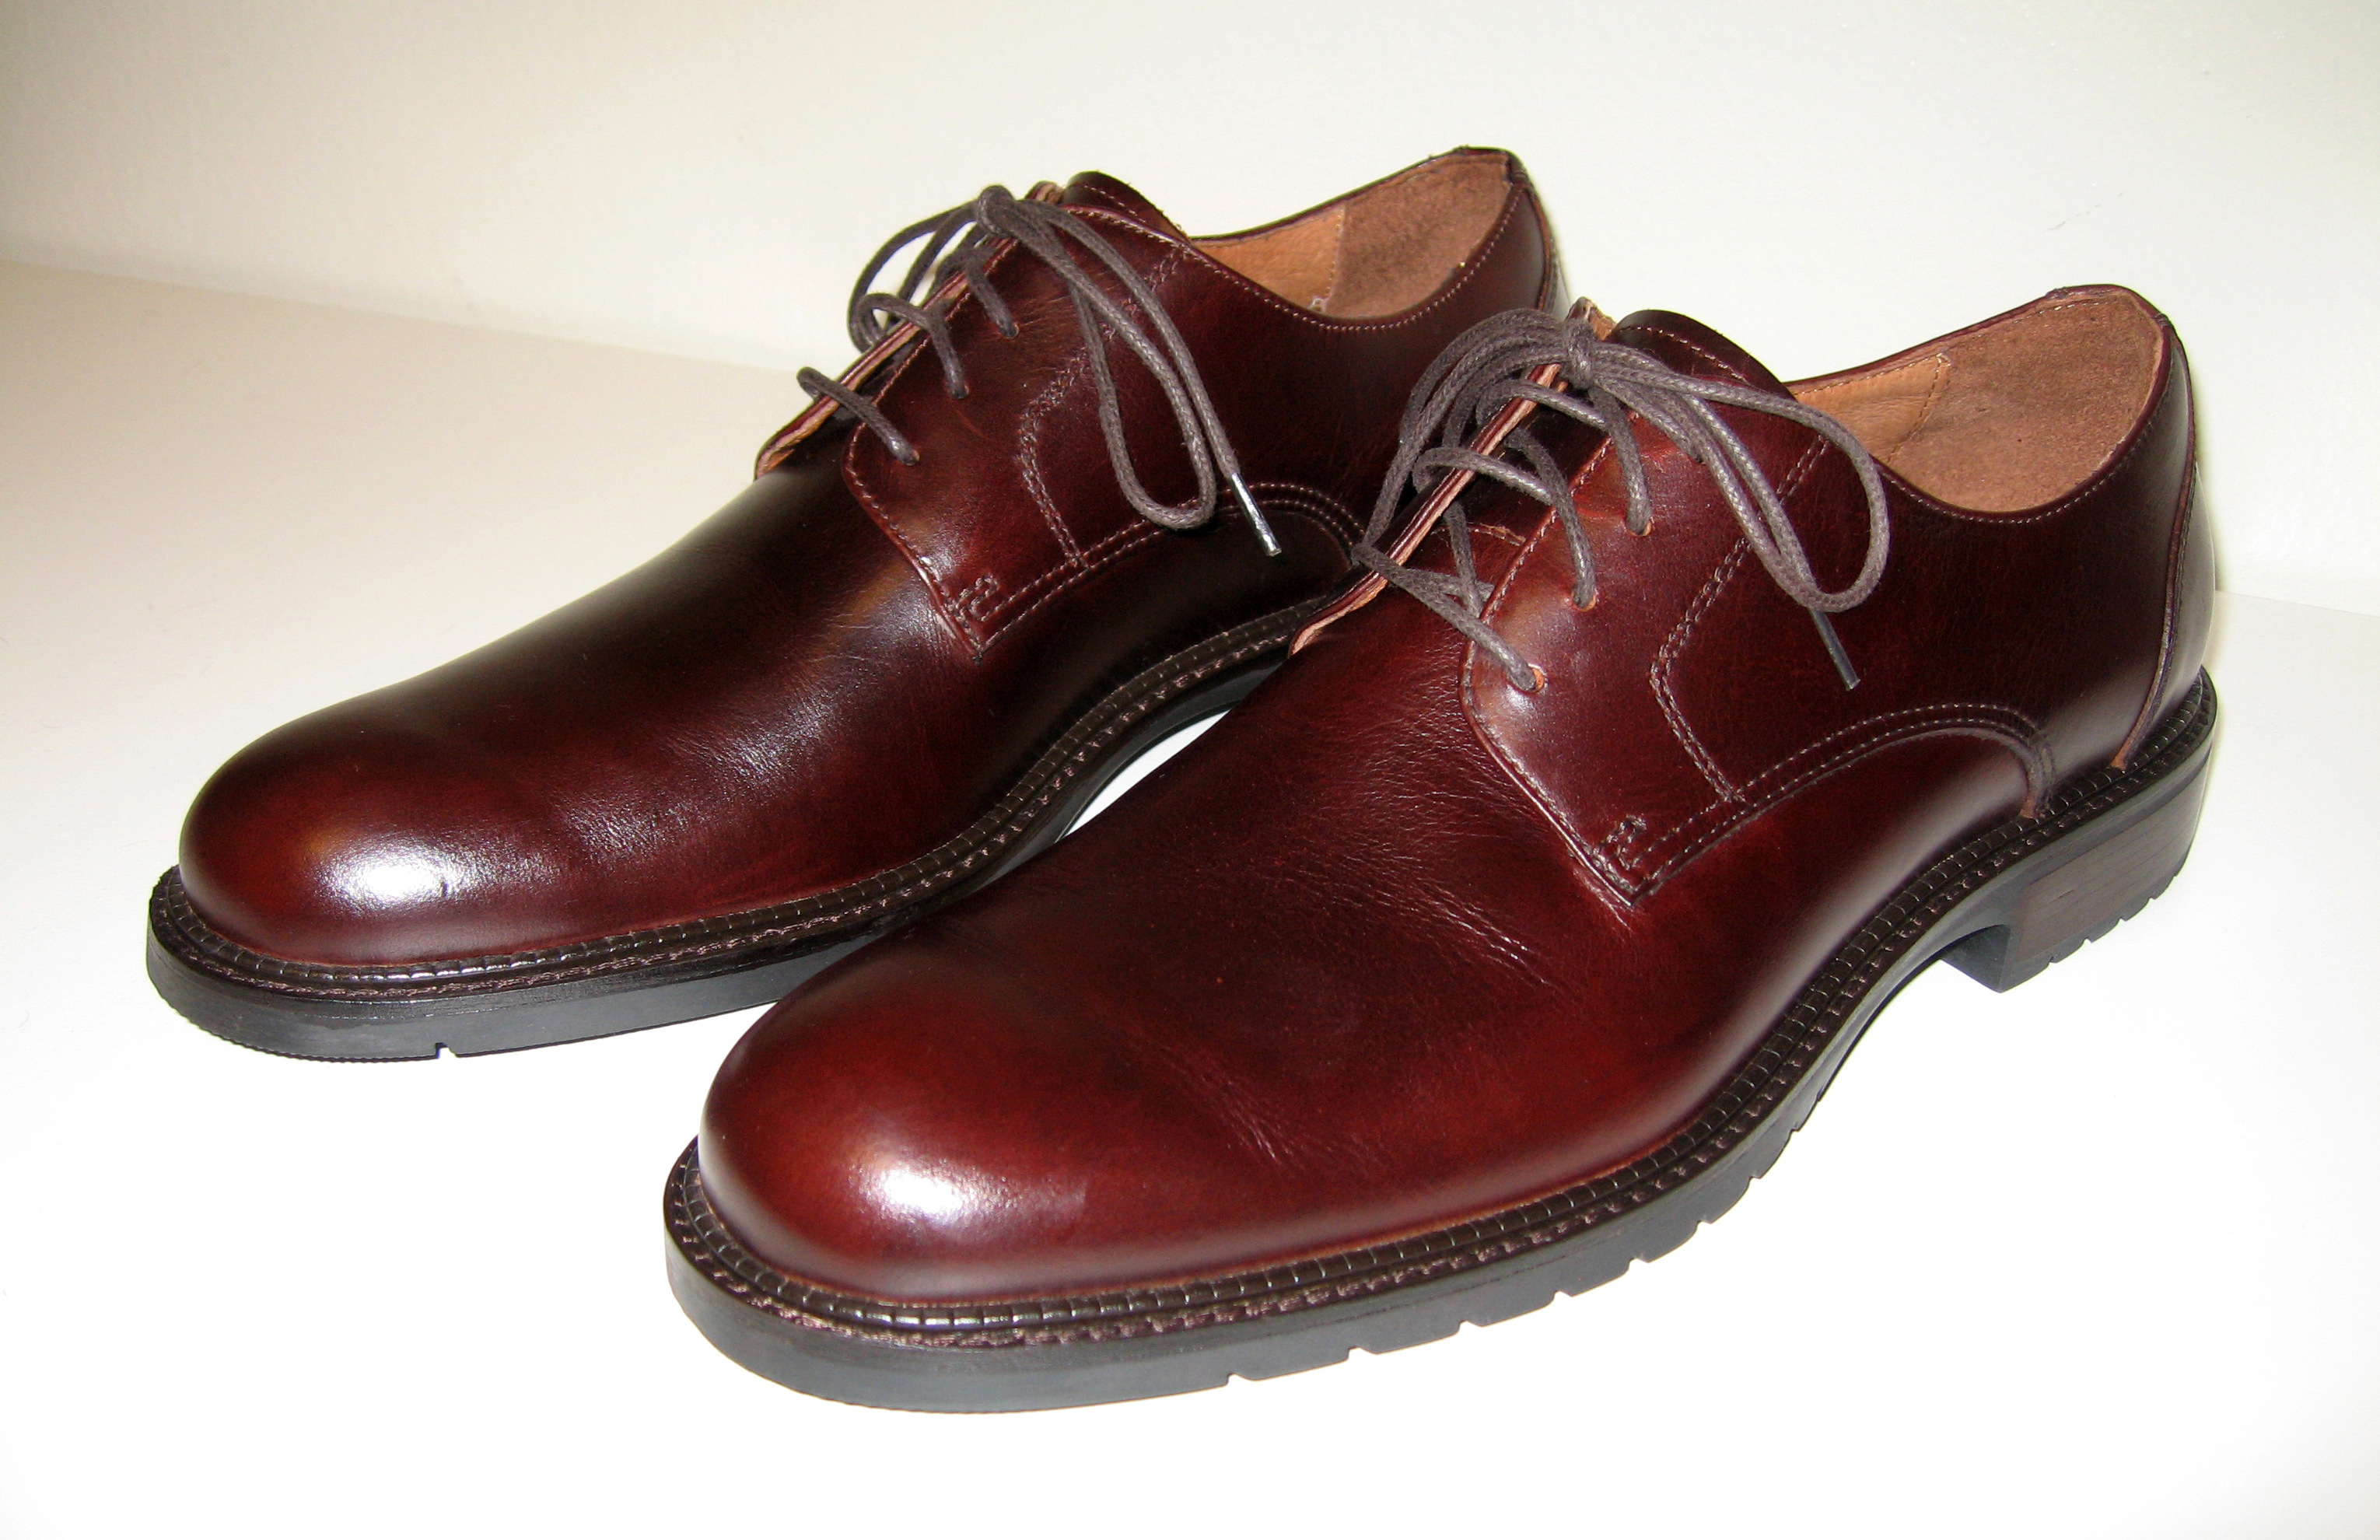 Mens brown derby leather shoes.jpg